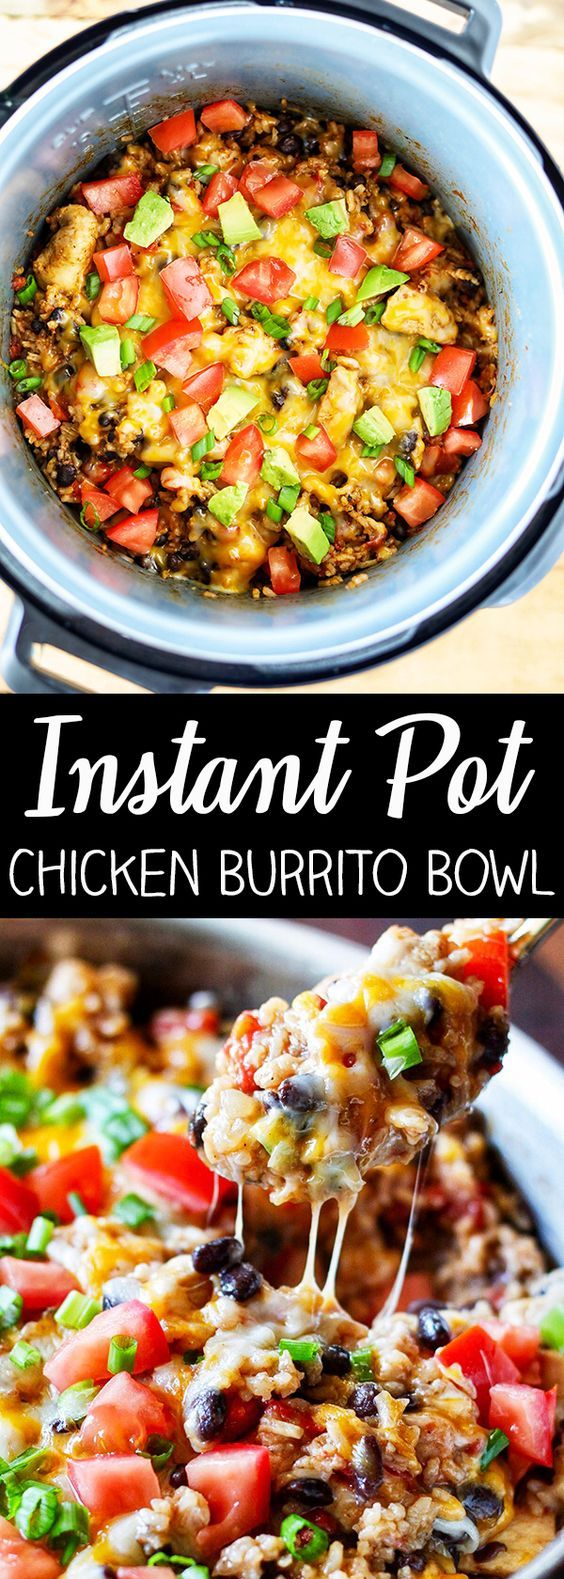 This recipe for Instant Pot Chicken Burrito Bowl is packed with flavor and so ea…